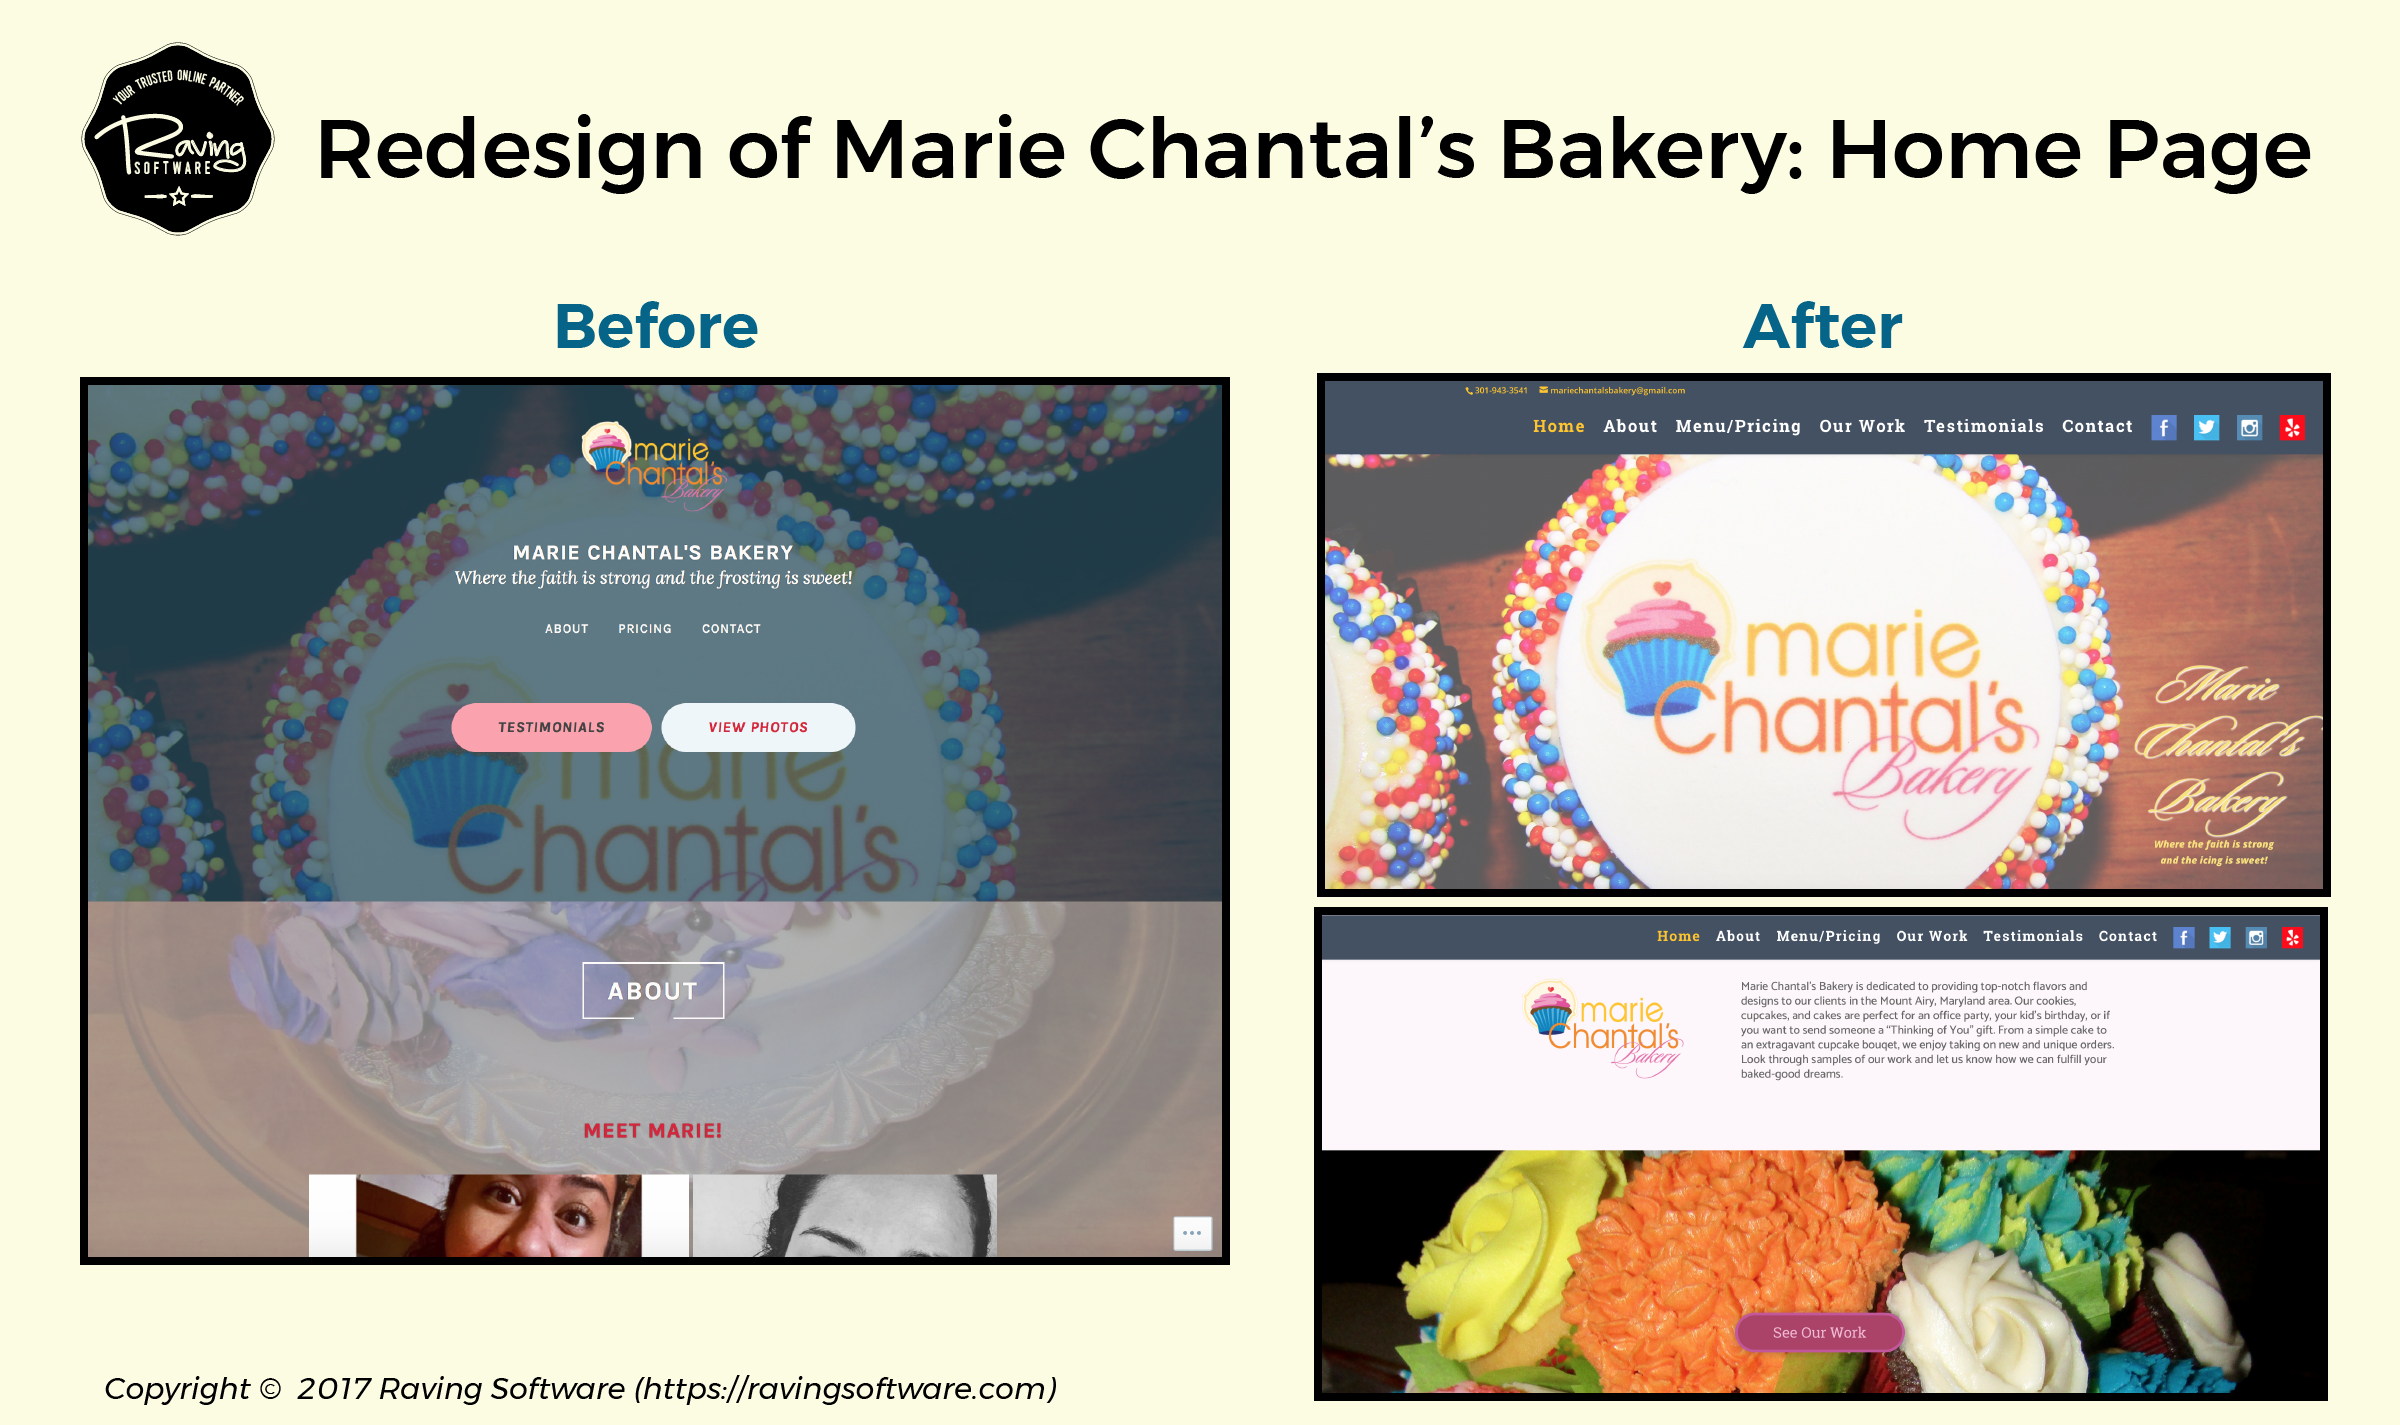 Before and After on Marie Chantal's Bakery website redesign for the home page.